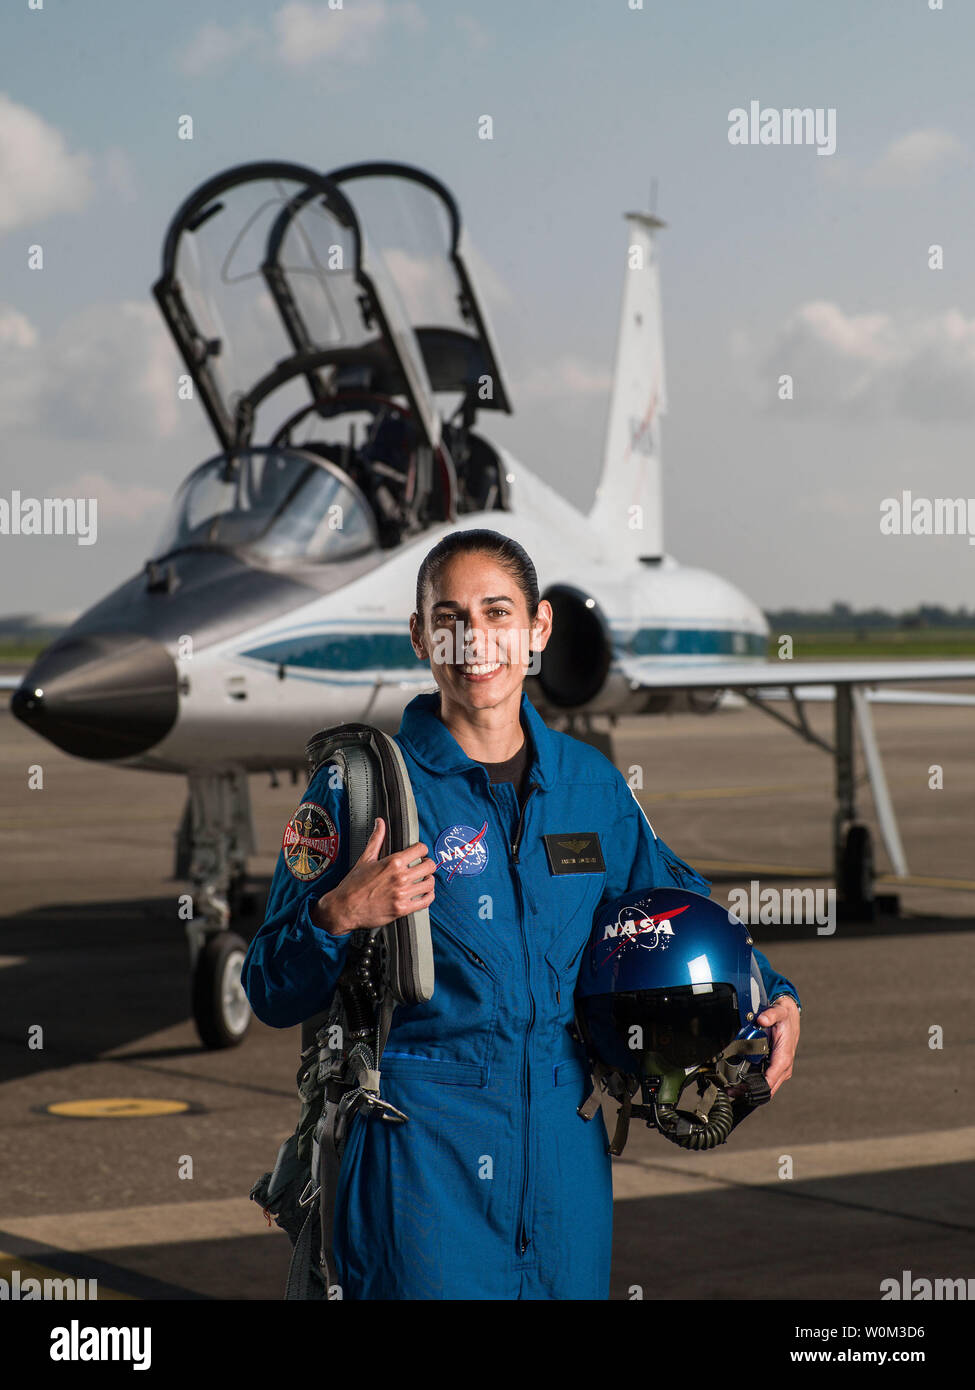 Jasmin Moghbeli has been selected by NASA to join the 2017 Astronaut Candidate Class. She will report for duty in August 2017. The New York native earned a Bachelor's degree in Aerospace Engineering with Information Technology at the Massachusetts Institute of Technology, followed by a Master's degree in Aerospace Engineering from the Naval Postgraduate School. NASA Photo by Robert Markowitz/UPI - Stock Image